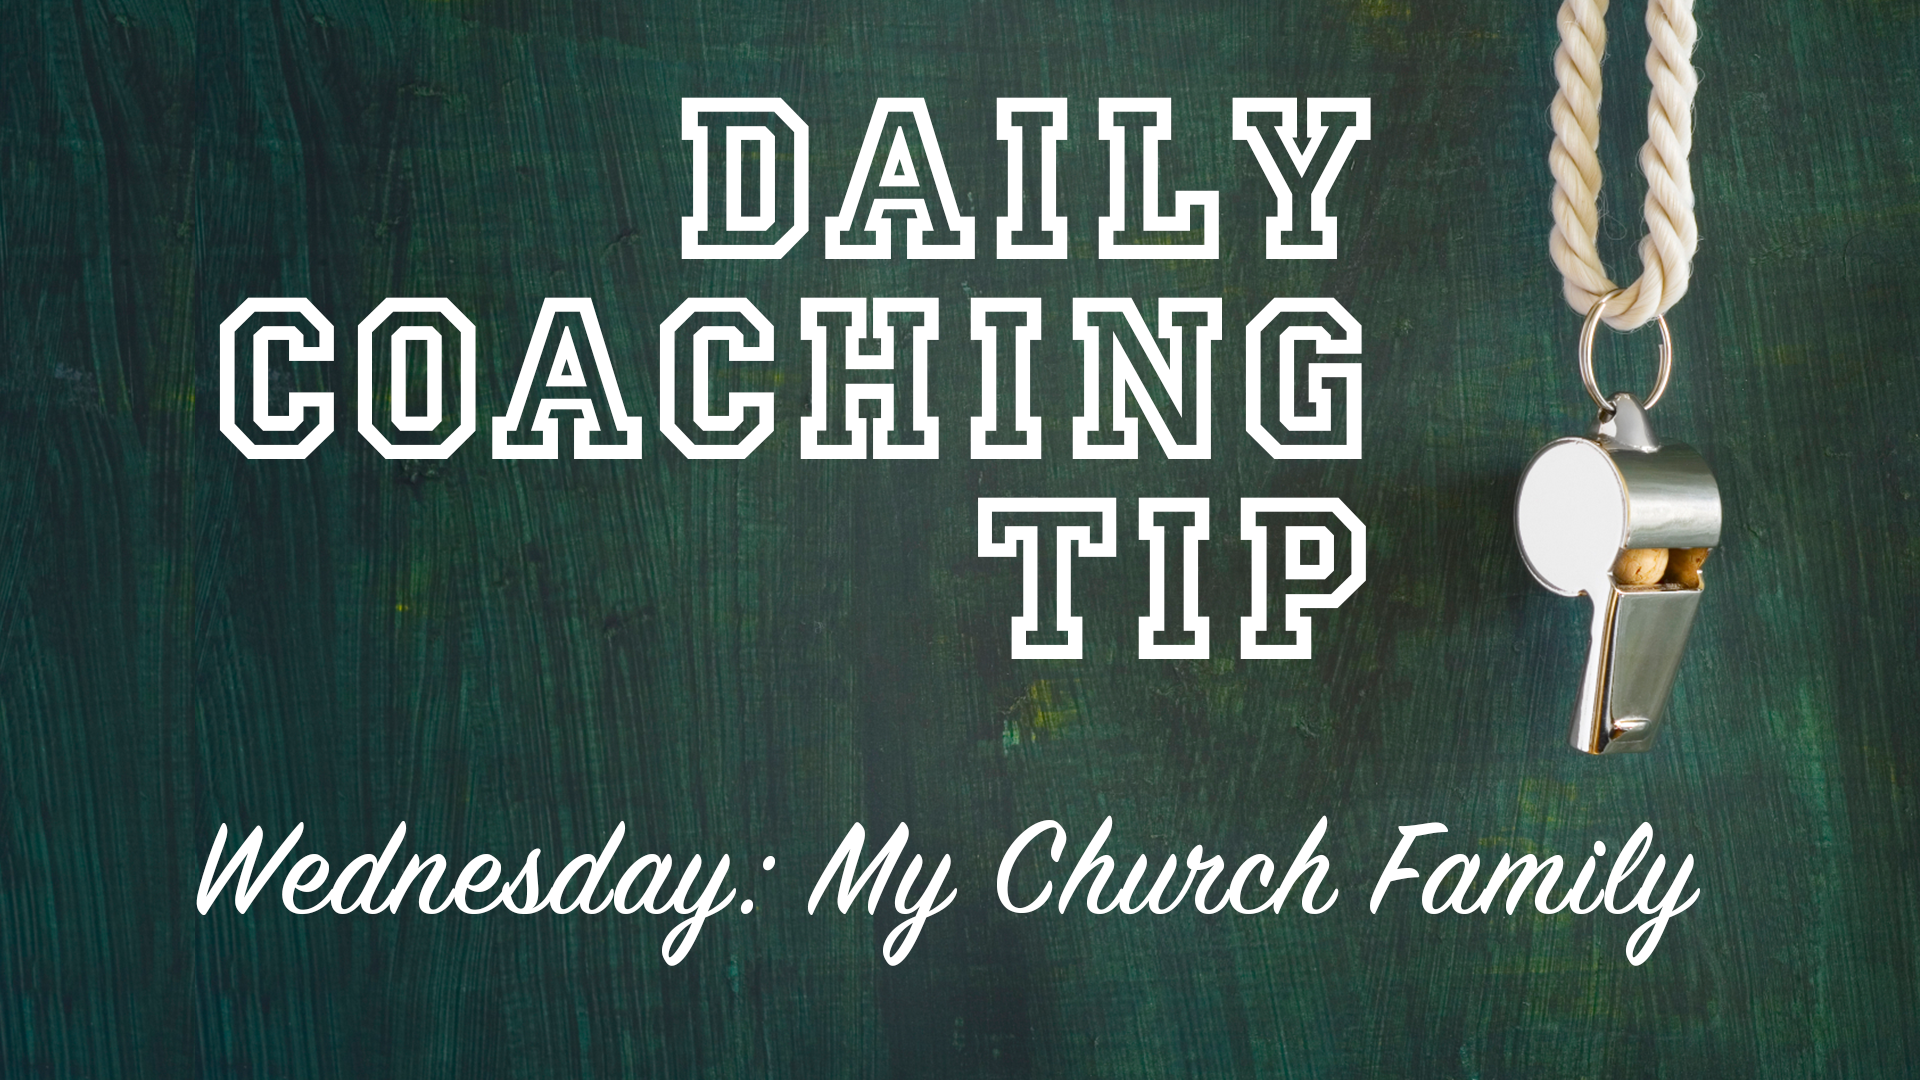 Daily Coaching Tip, Wednesday, April 6, 2016